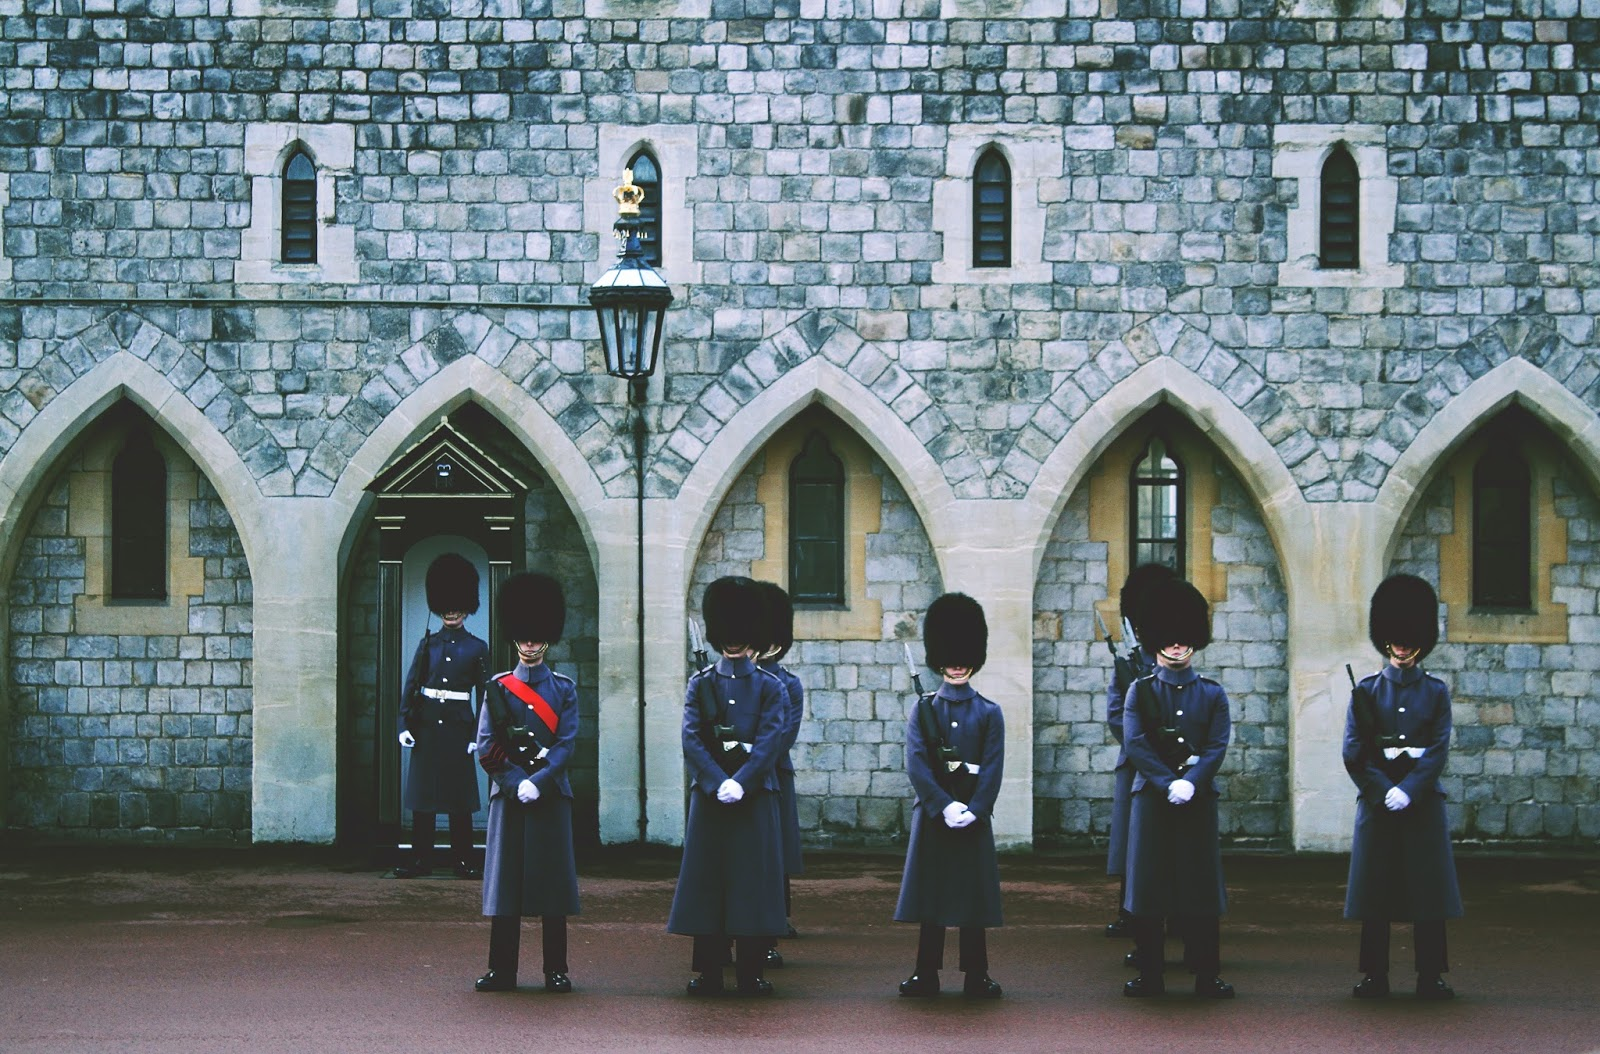 guards outside Windsor Castle, England